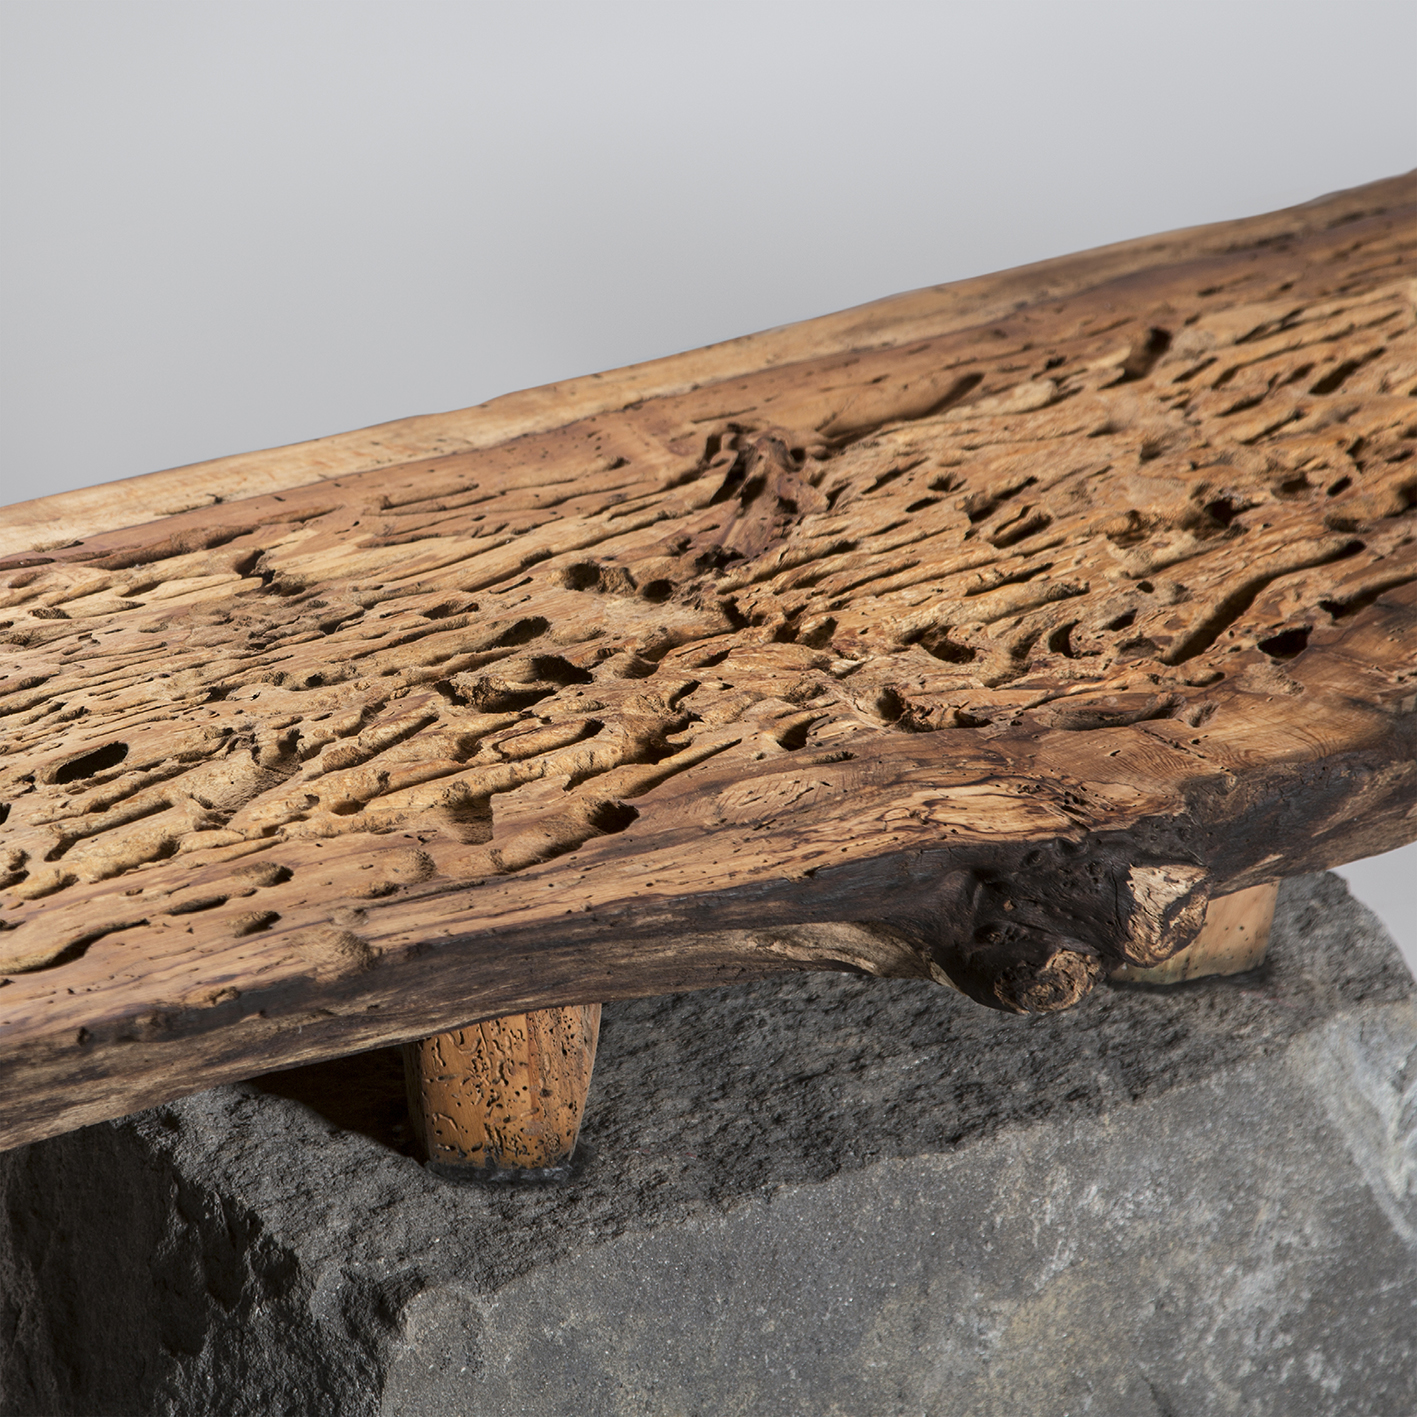 web2-bench-salvaged-mexican-alder-wood-basalt-recinto-with-feet-shi-ho-julio-martinez-marion-friedmann-gallery-24.jpg